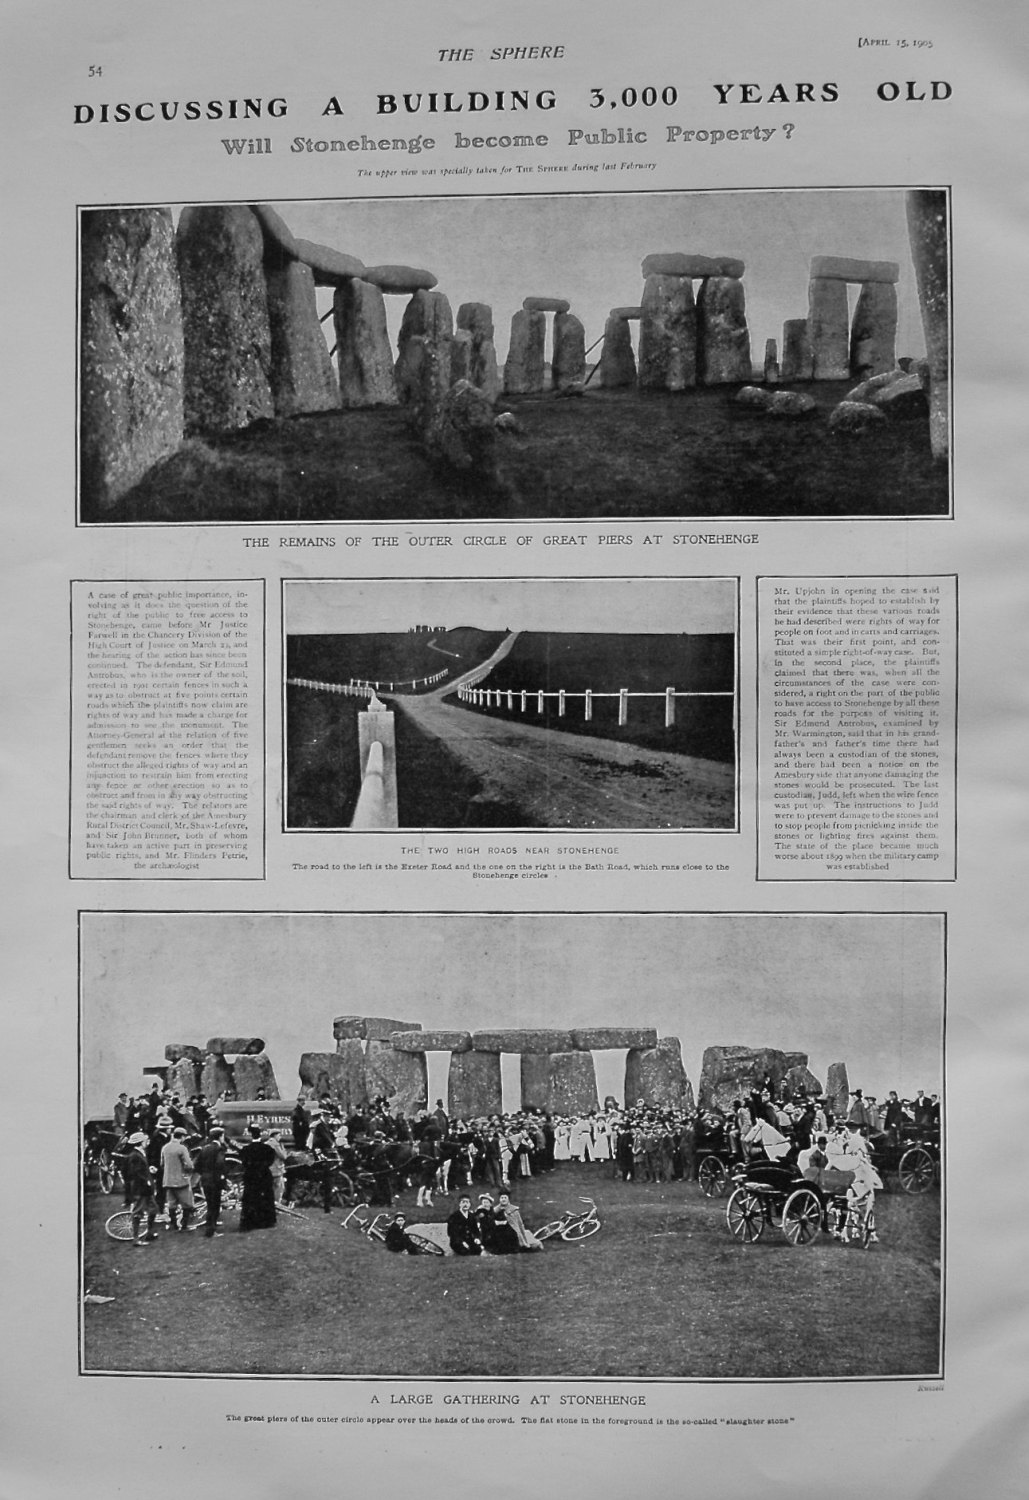 Discussing a Building 3,000 Years Old. : Will Stonehenge become Public Prop